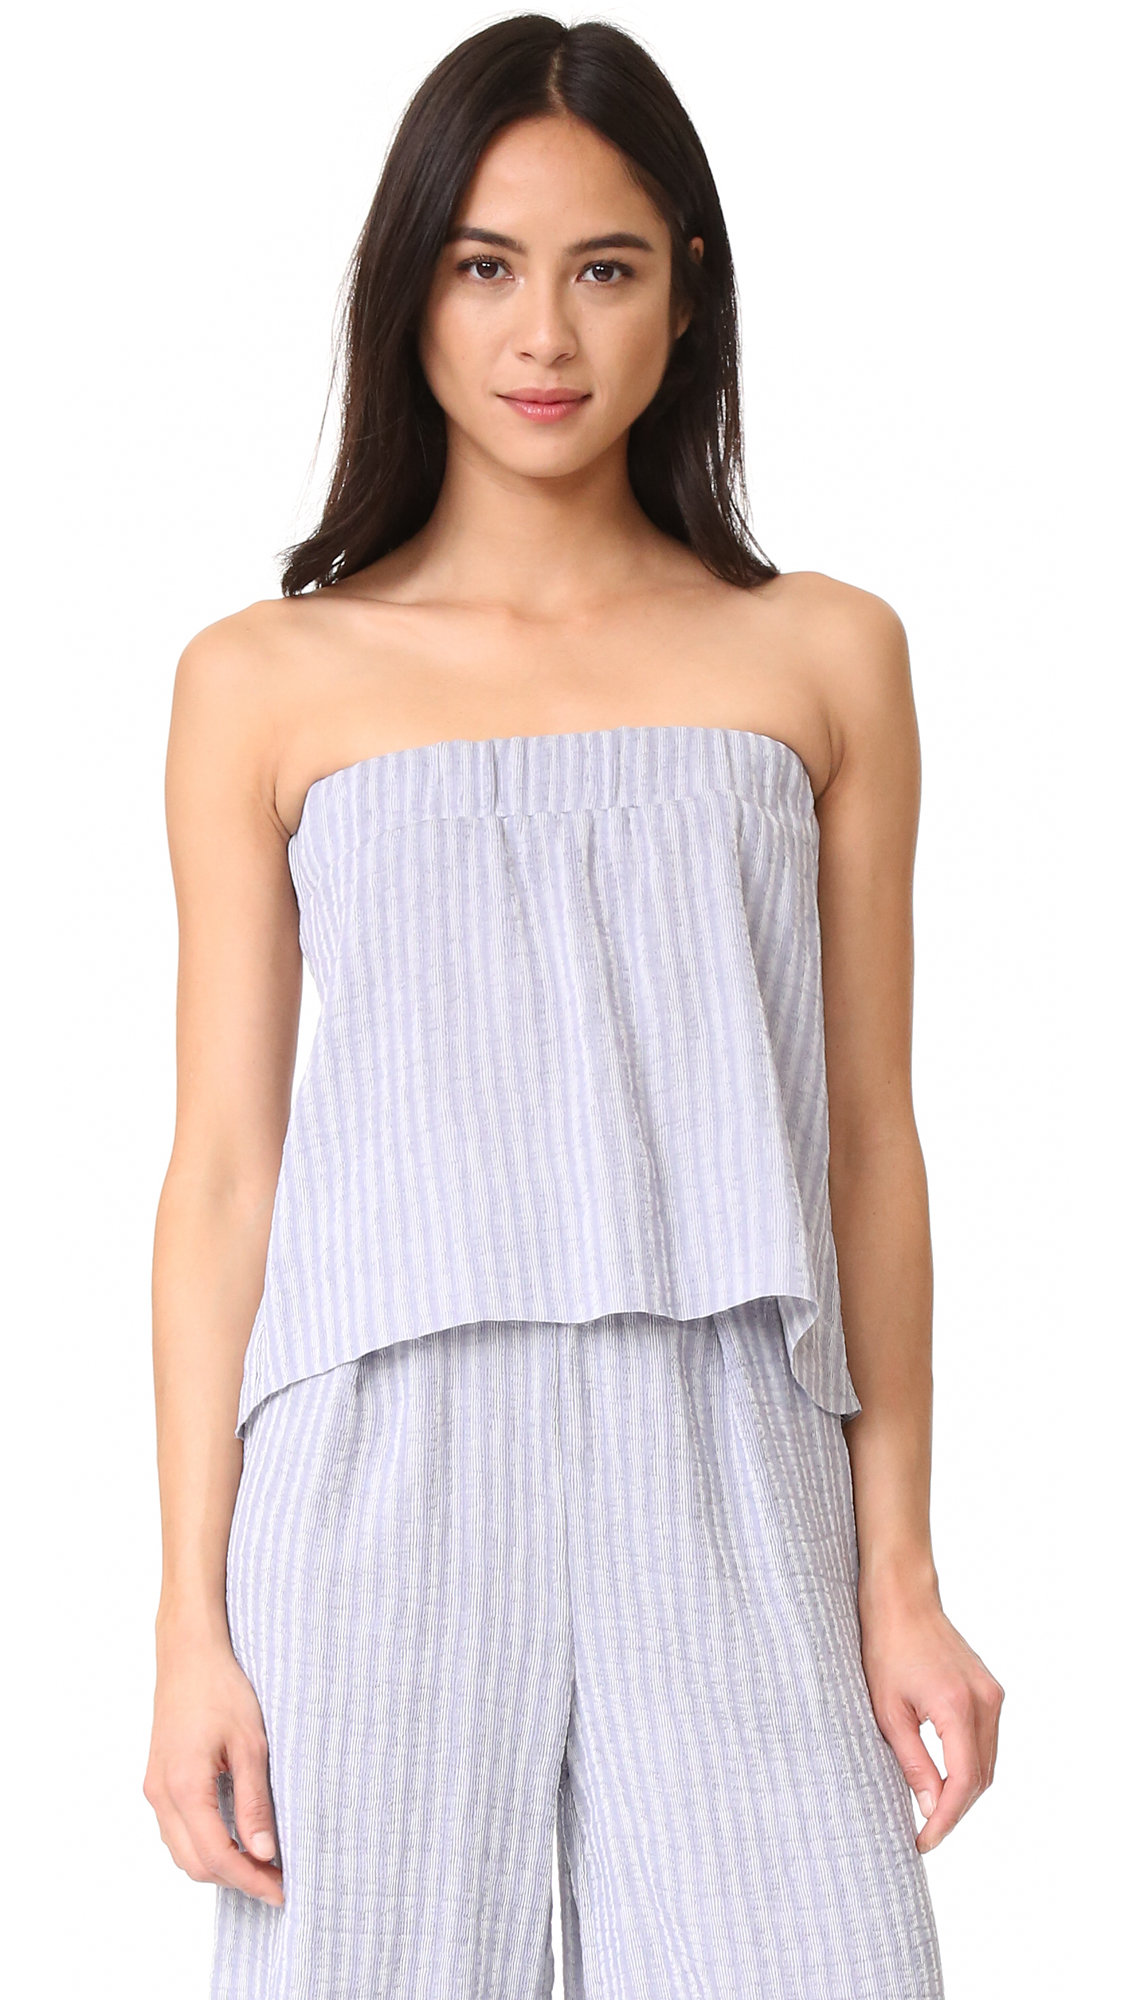 Suboo Twilight Sky Strapless Top - Twilight Sky